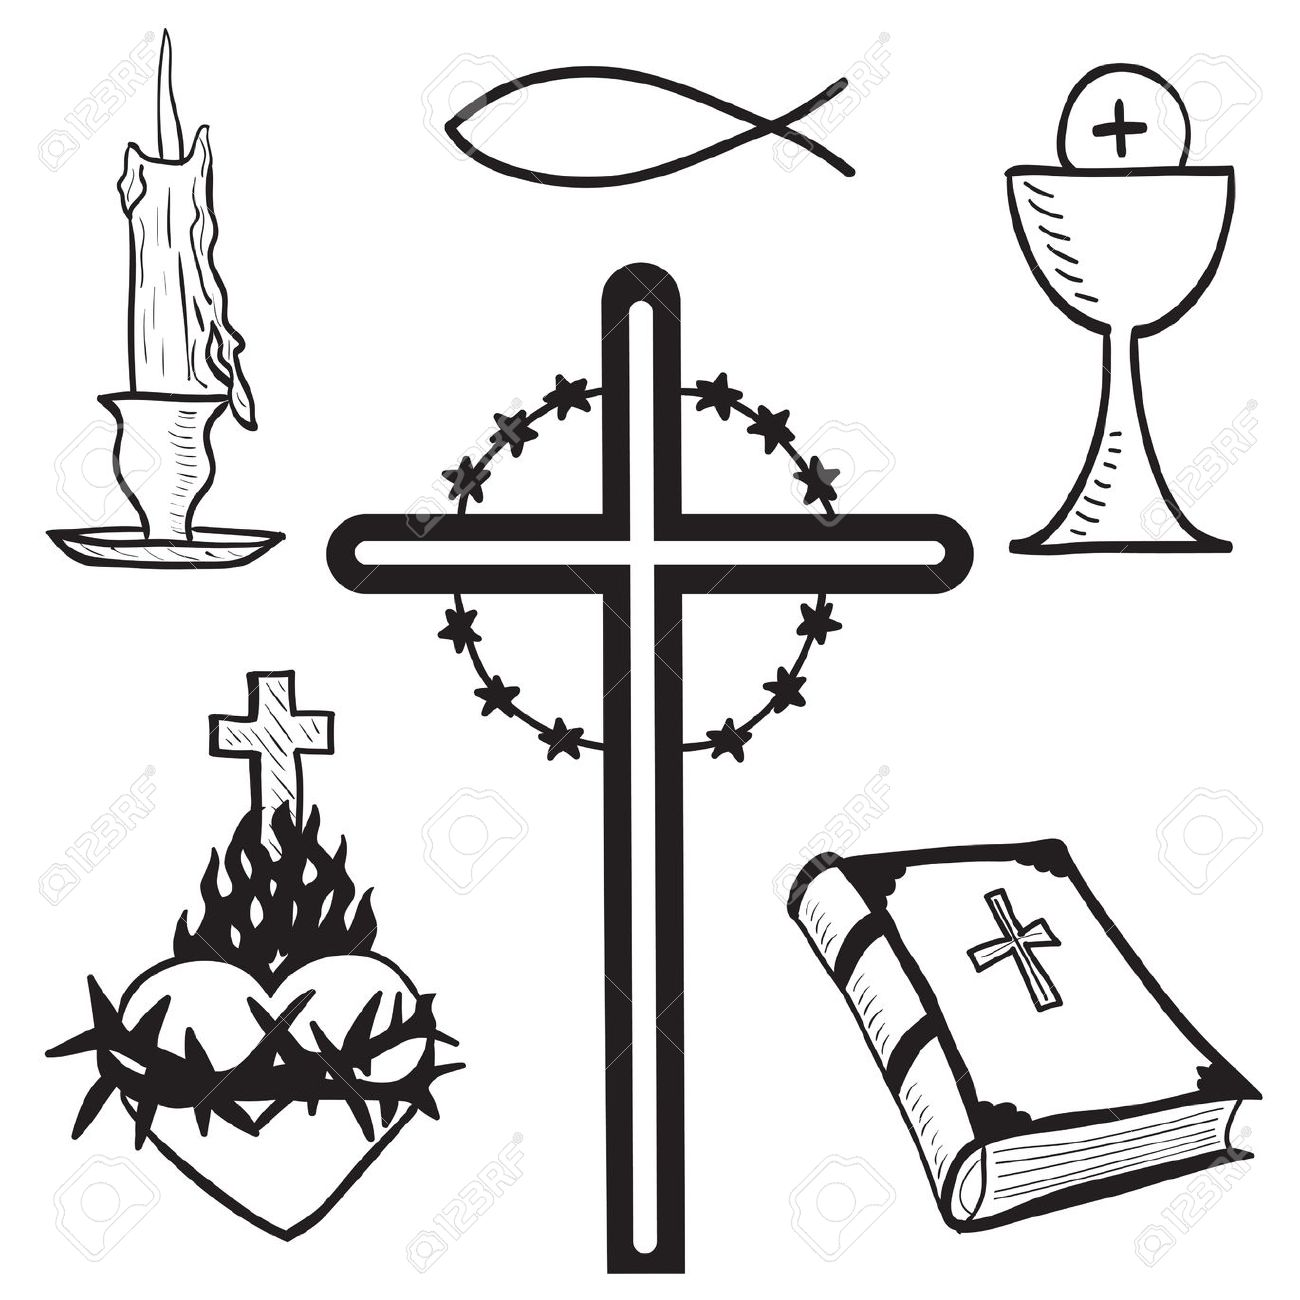 hight resolution of christian hand drawn symbols illustration candle cross bible fish heart free clipart for church jesus hands